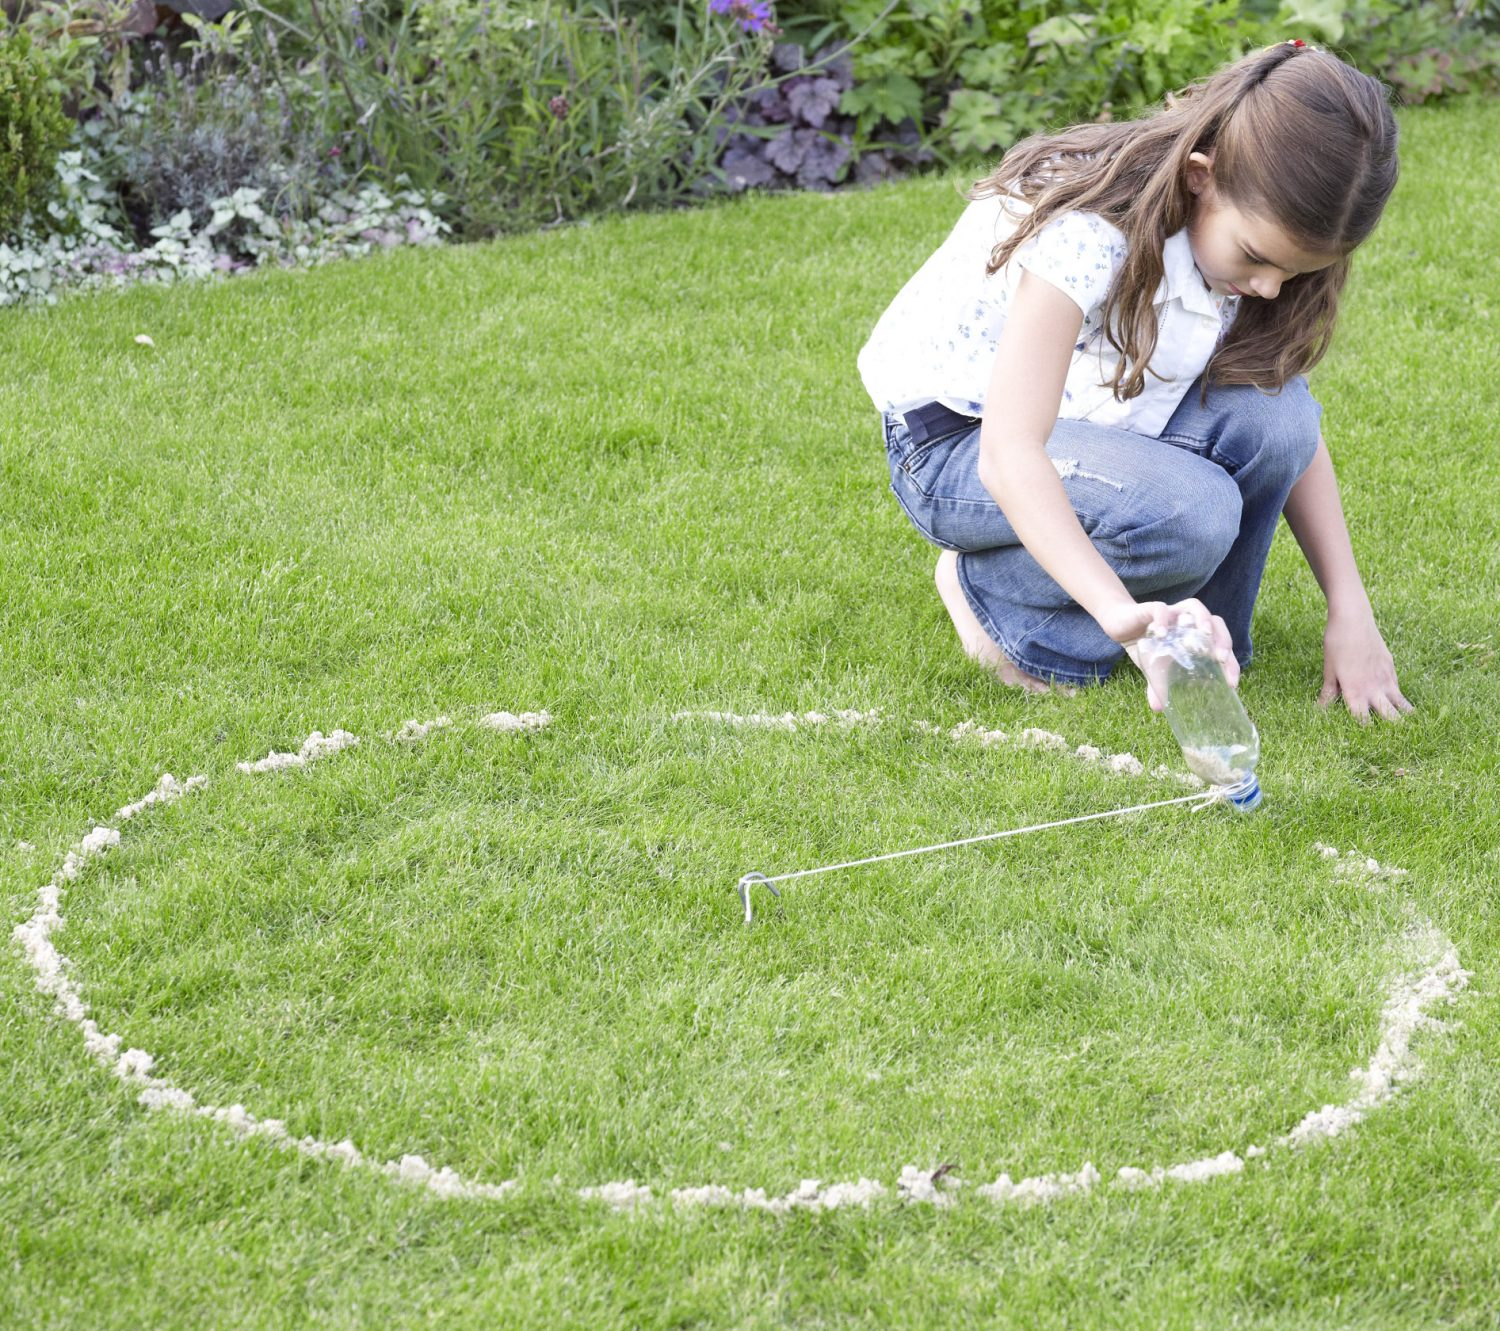 Ask a grown-up to use the bulb planter to make a hole along this circle every 4in (10cm) and leave the 'plug' of soil and grass by the side of the hole. The hole should only be about 2in (5cm) below the surface of the grass.